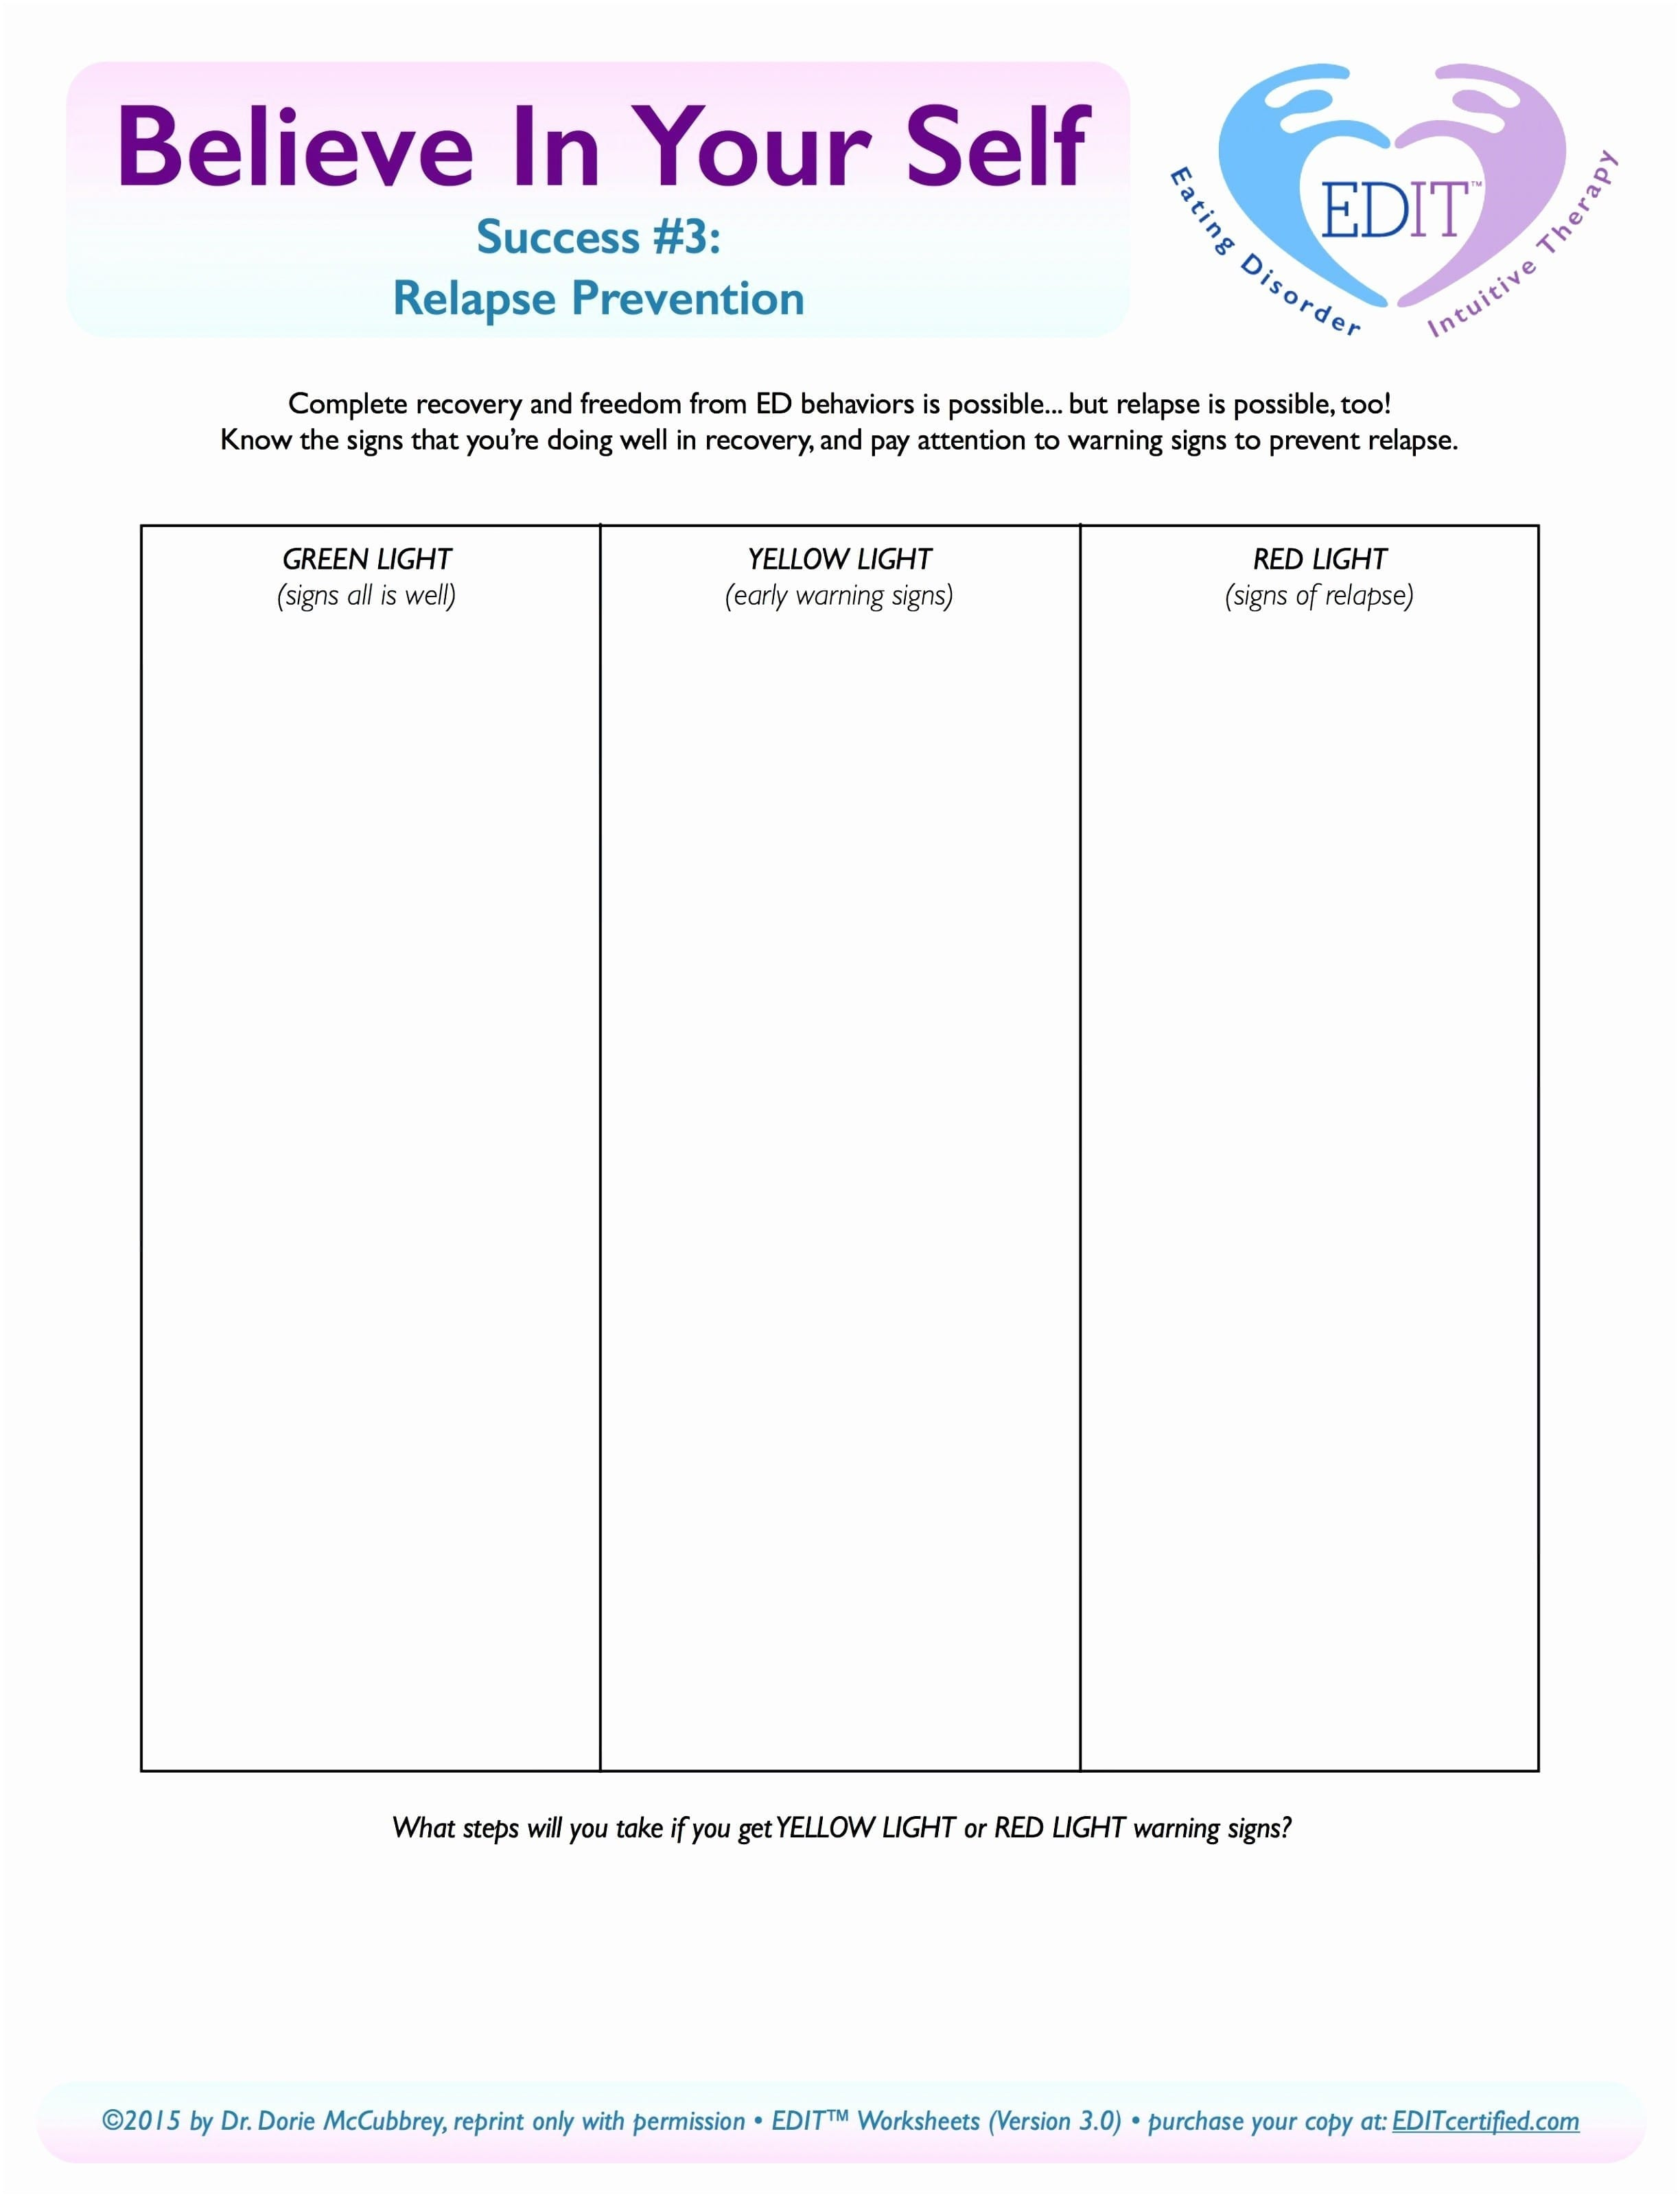 022 Substance Abuse Group Worksheets Elegant Relapse